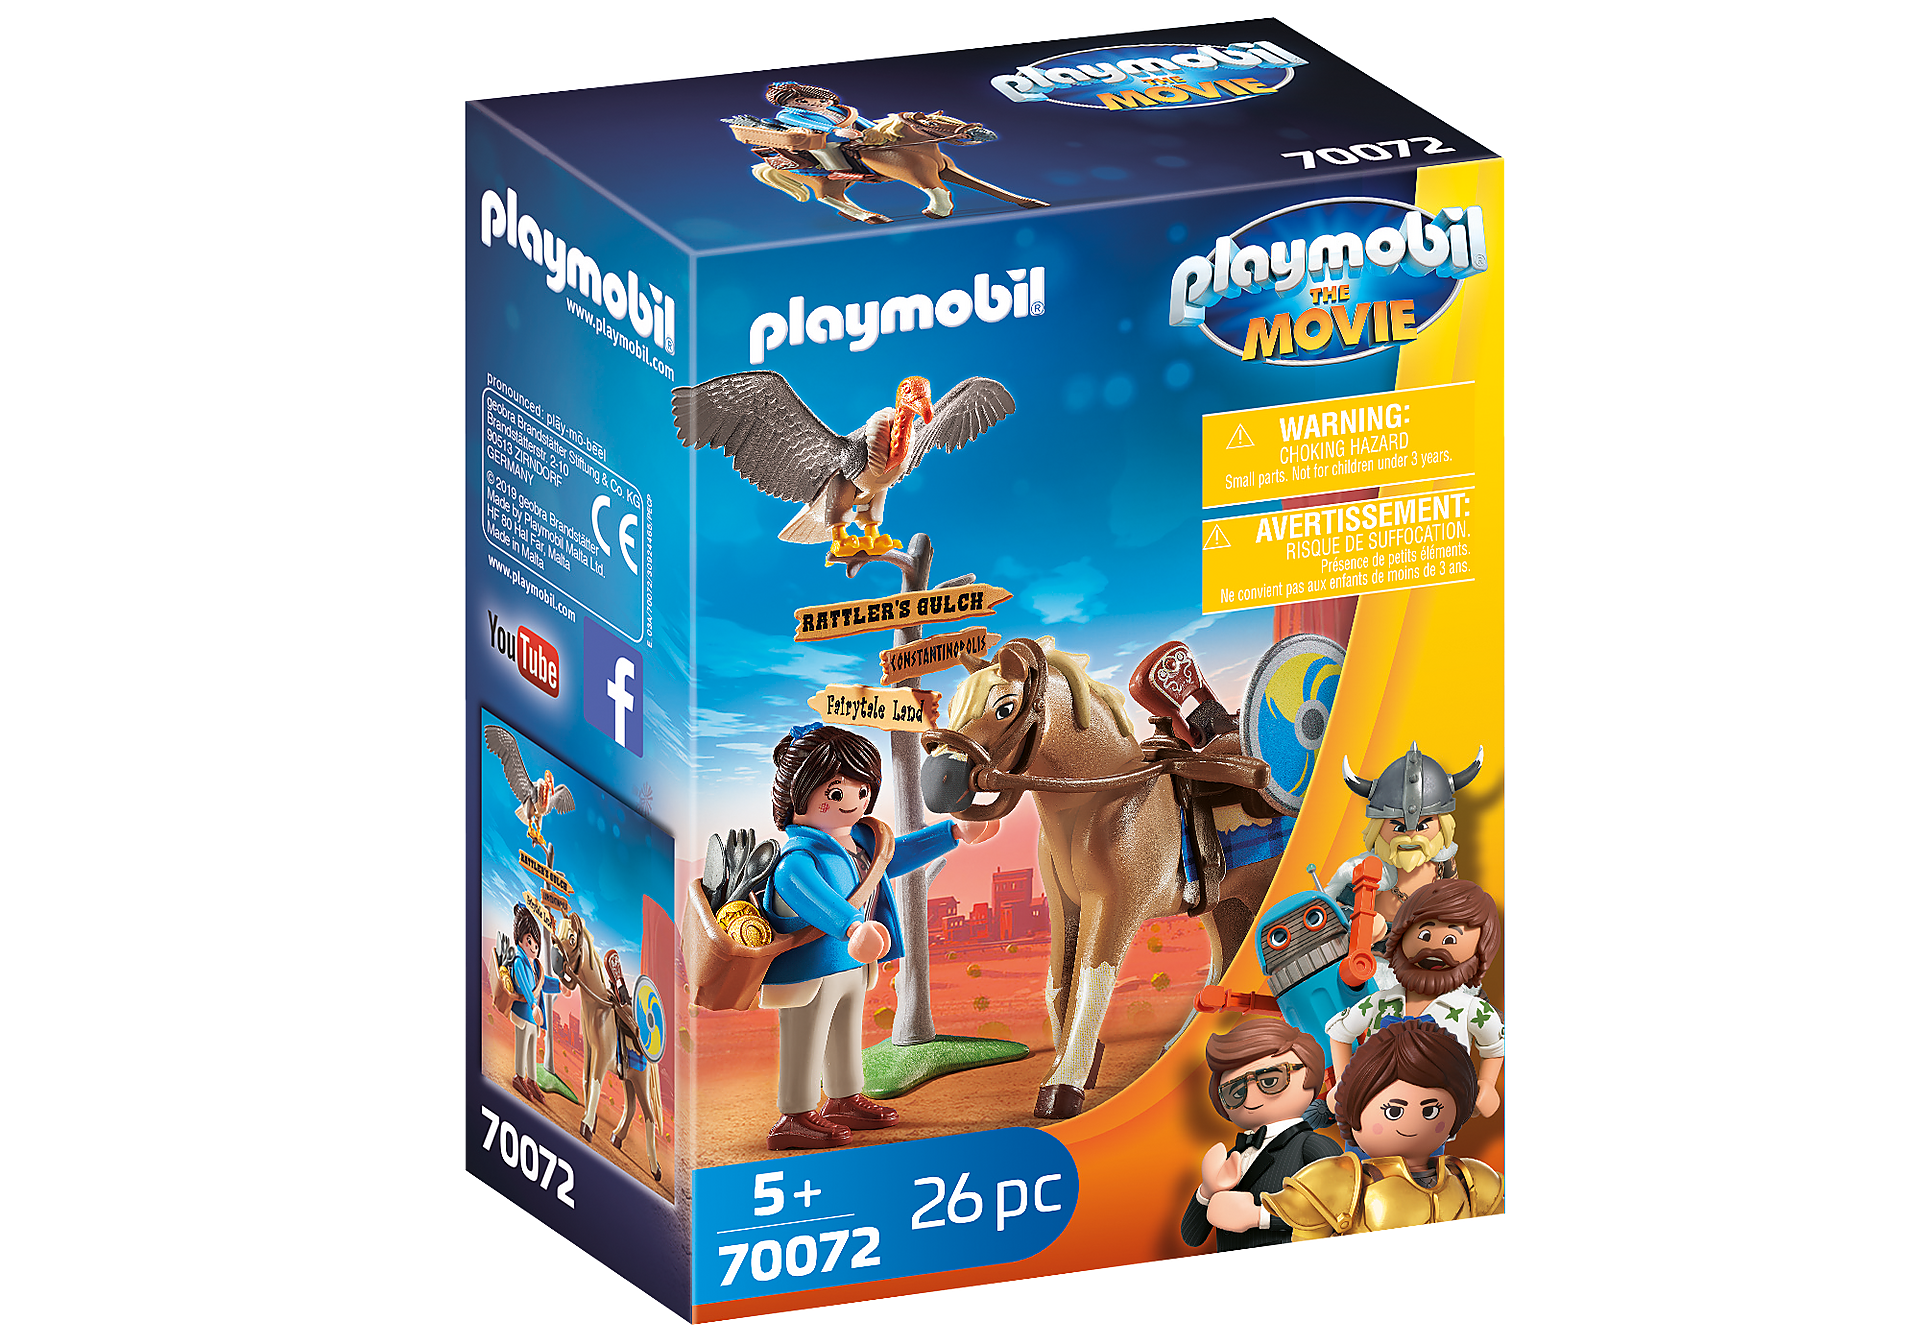 http://media.playmobil.com/i/playmobil/70072_product_box_front/PLAYMOBIL: THE MOVIE Marla com Cavalo